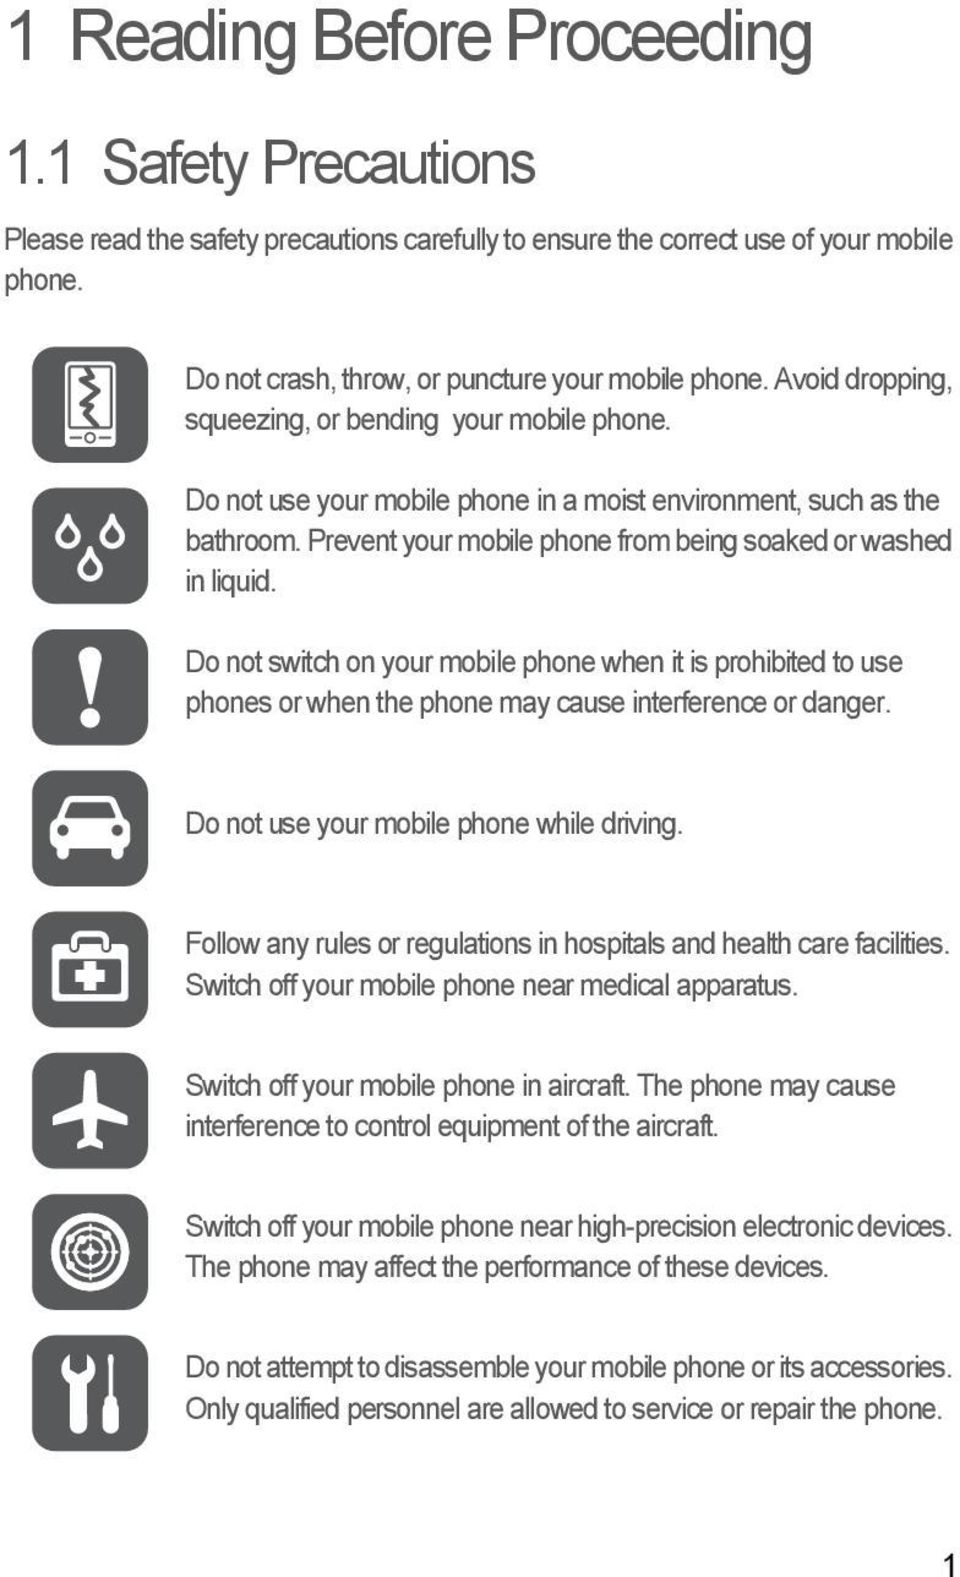 Do not switch on your mobile phone when it is prohibited to use phones or when the phone may cause interference or danger. Do not use your mobile phone while driving.